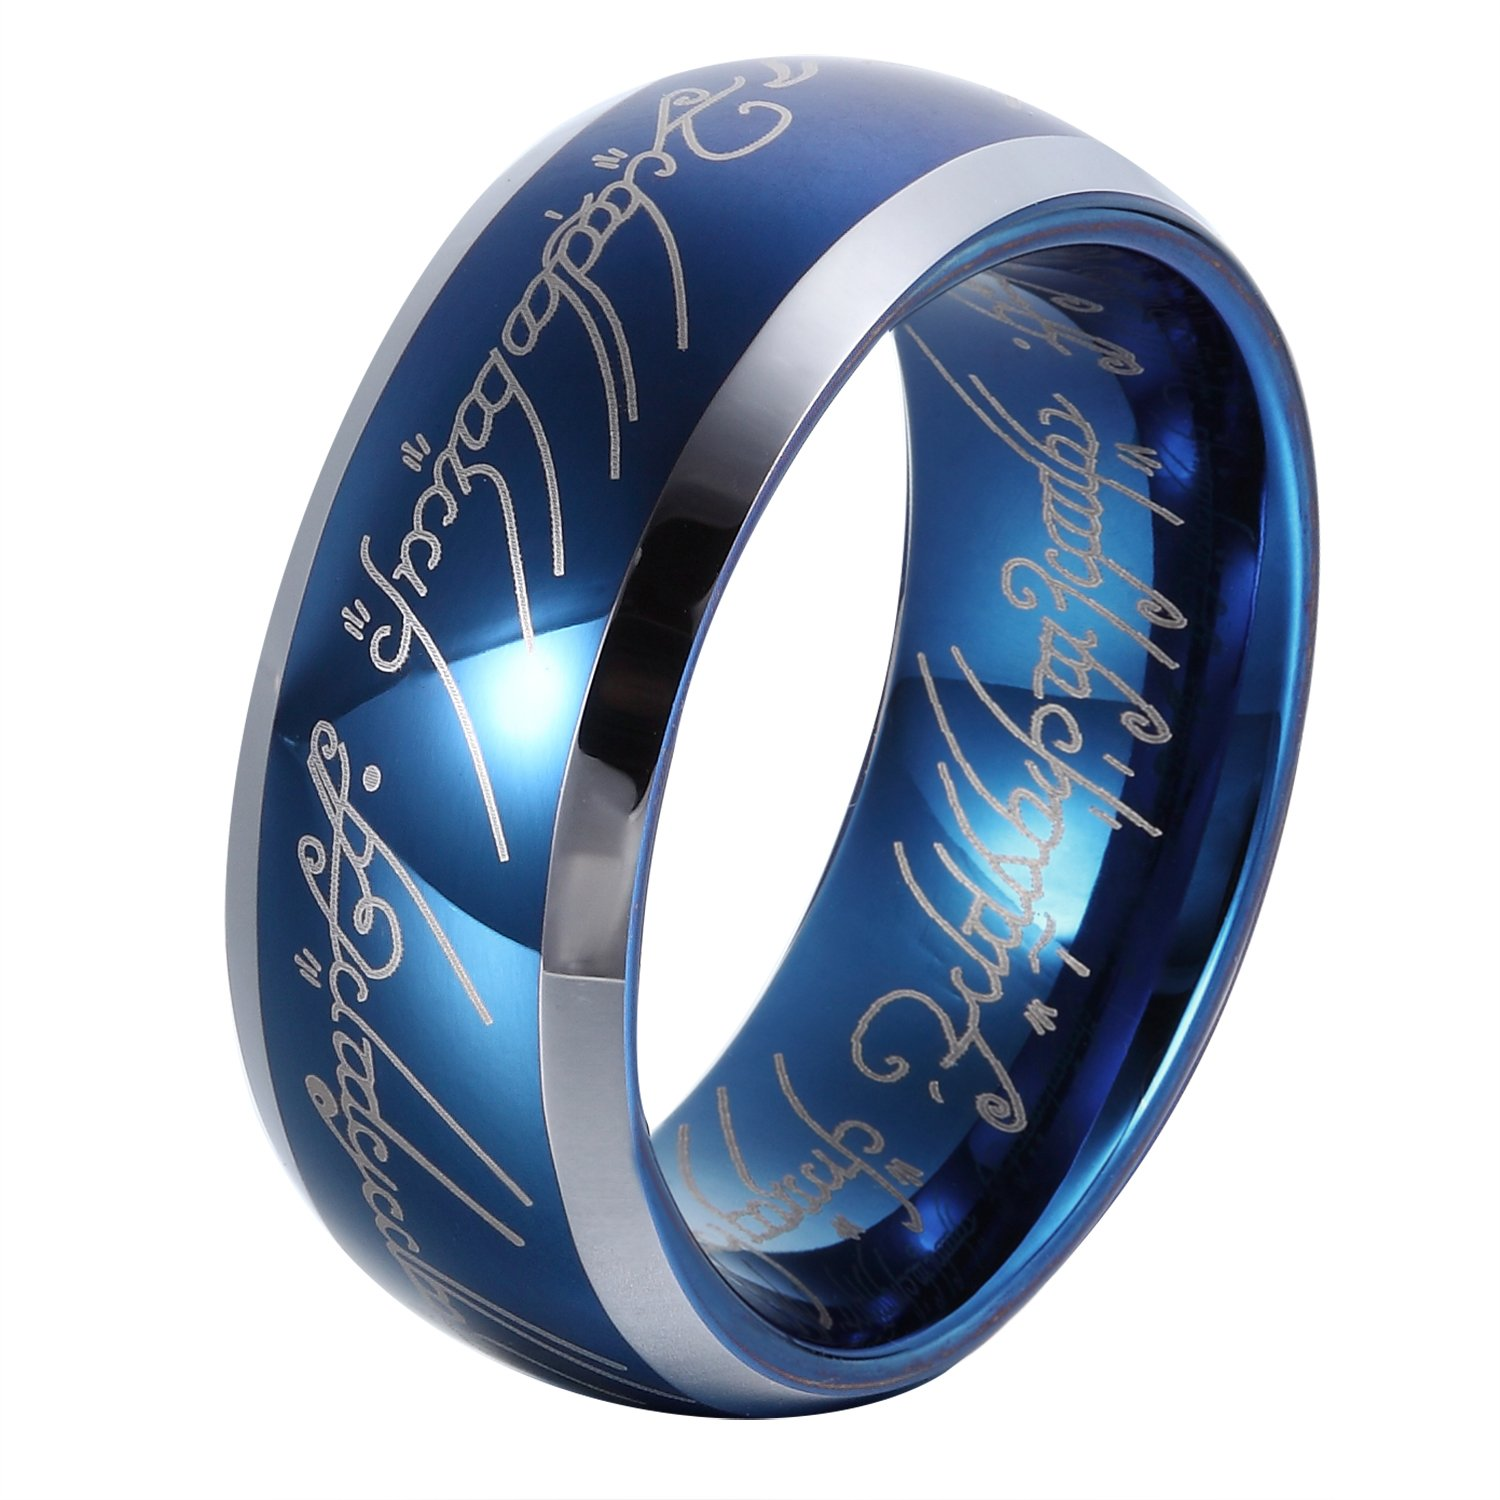 mens en plating wedding stainless zm hover steel kay black band zoom blue ion bands to mv kaystore